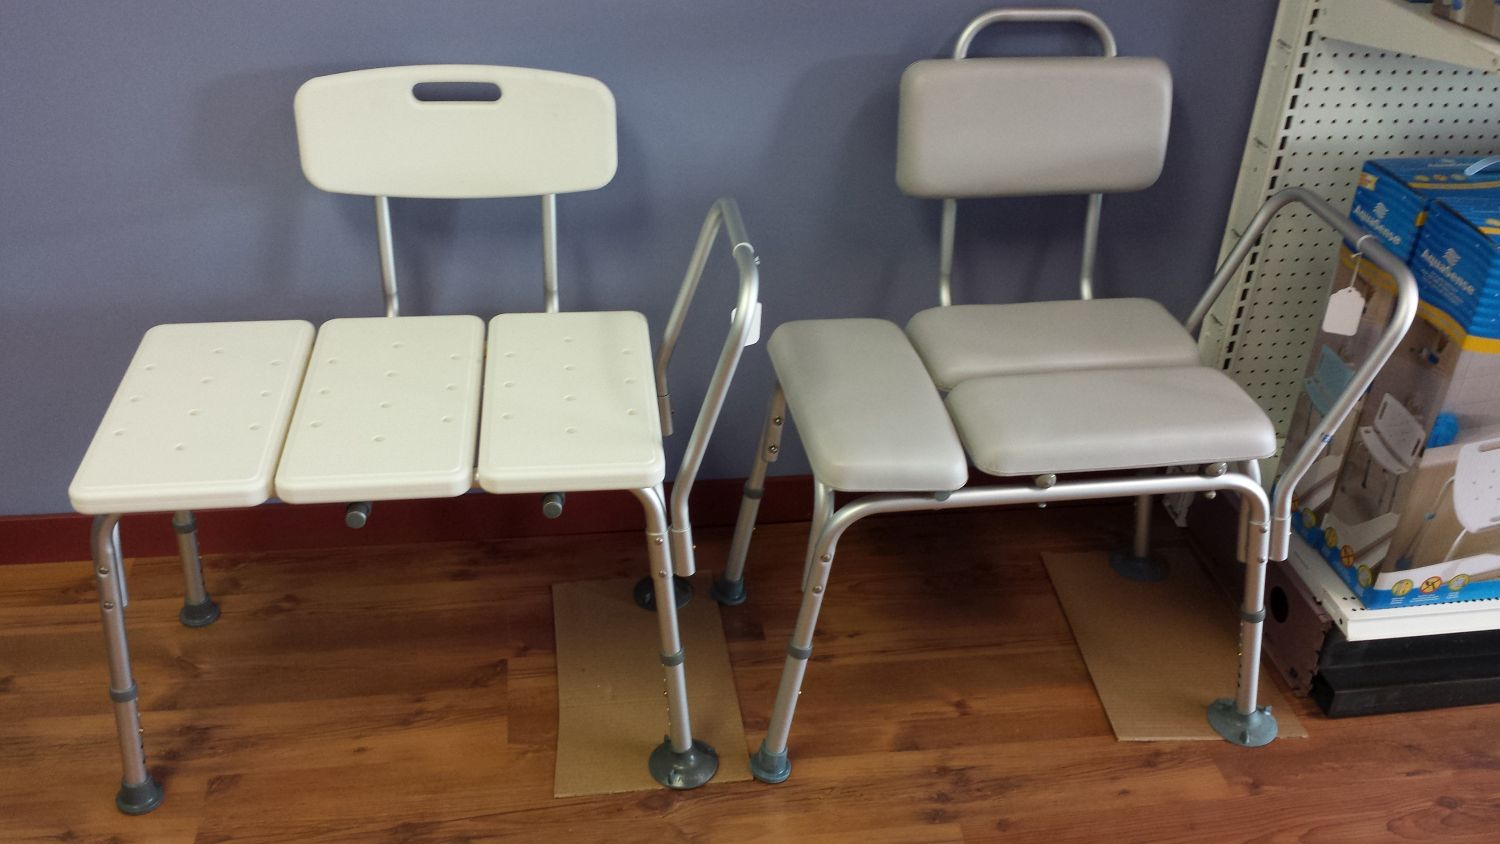 Daily Living Aids Transfer Chairs